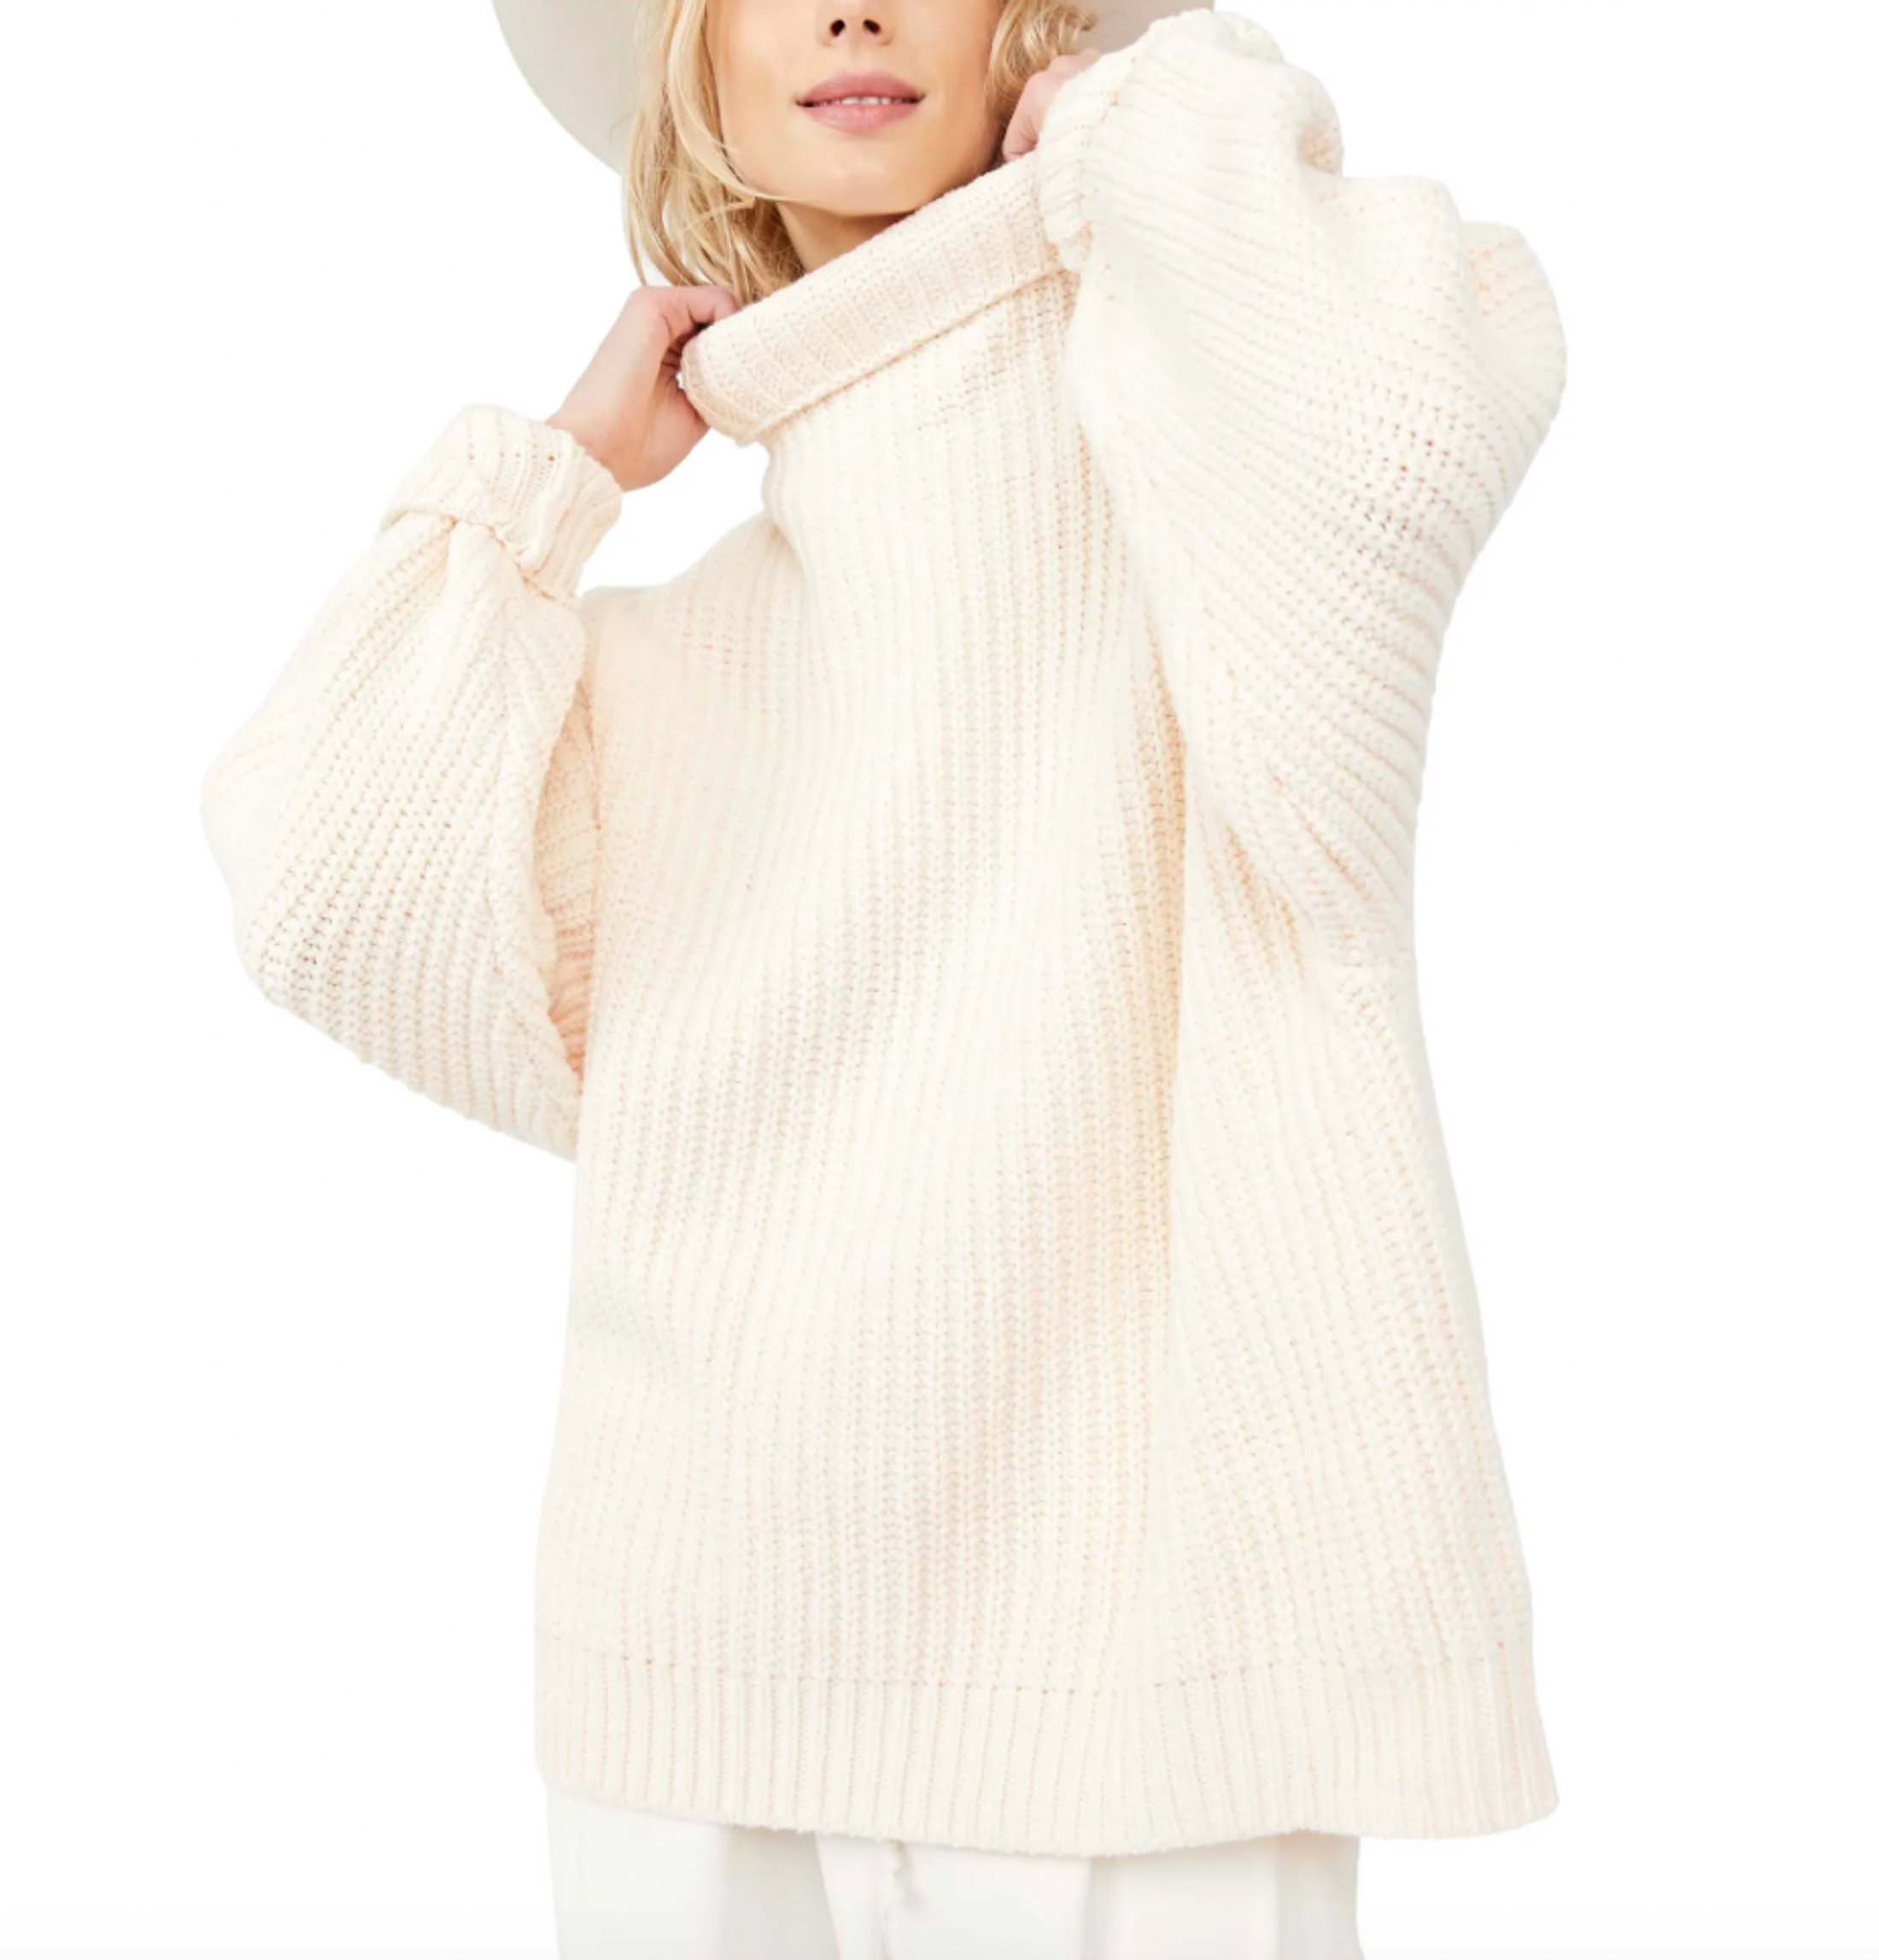 This Free People deep turtleneck is a newbie design for FP and it is stunning.